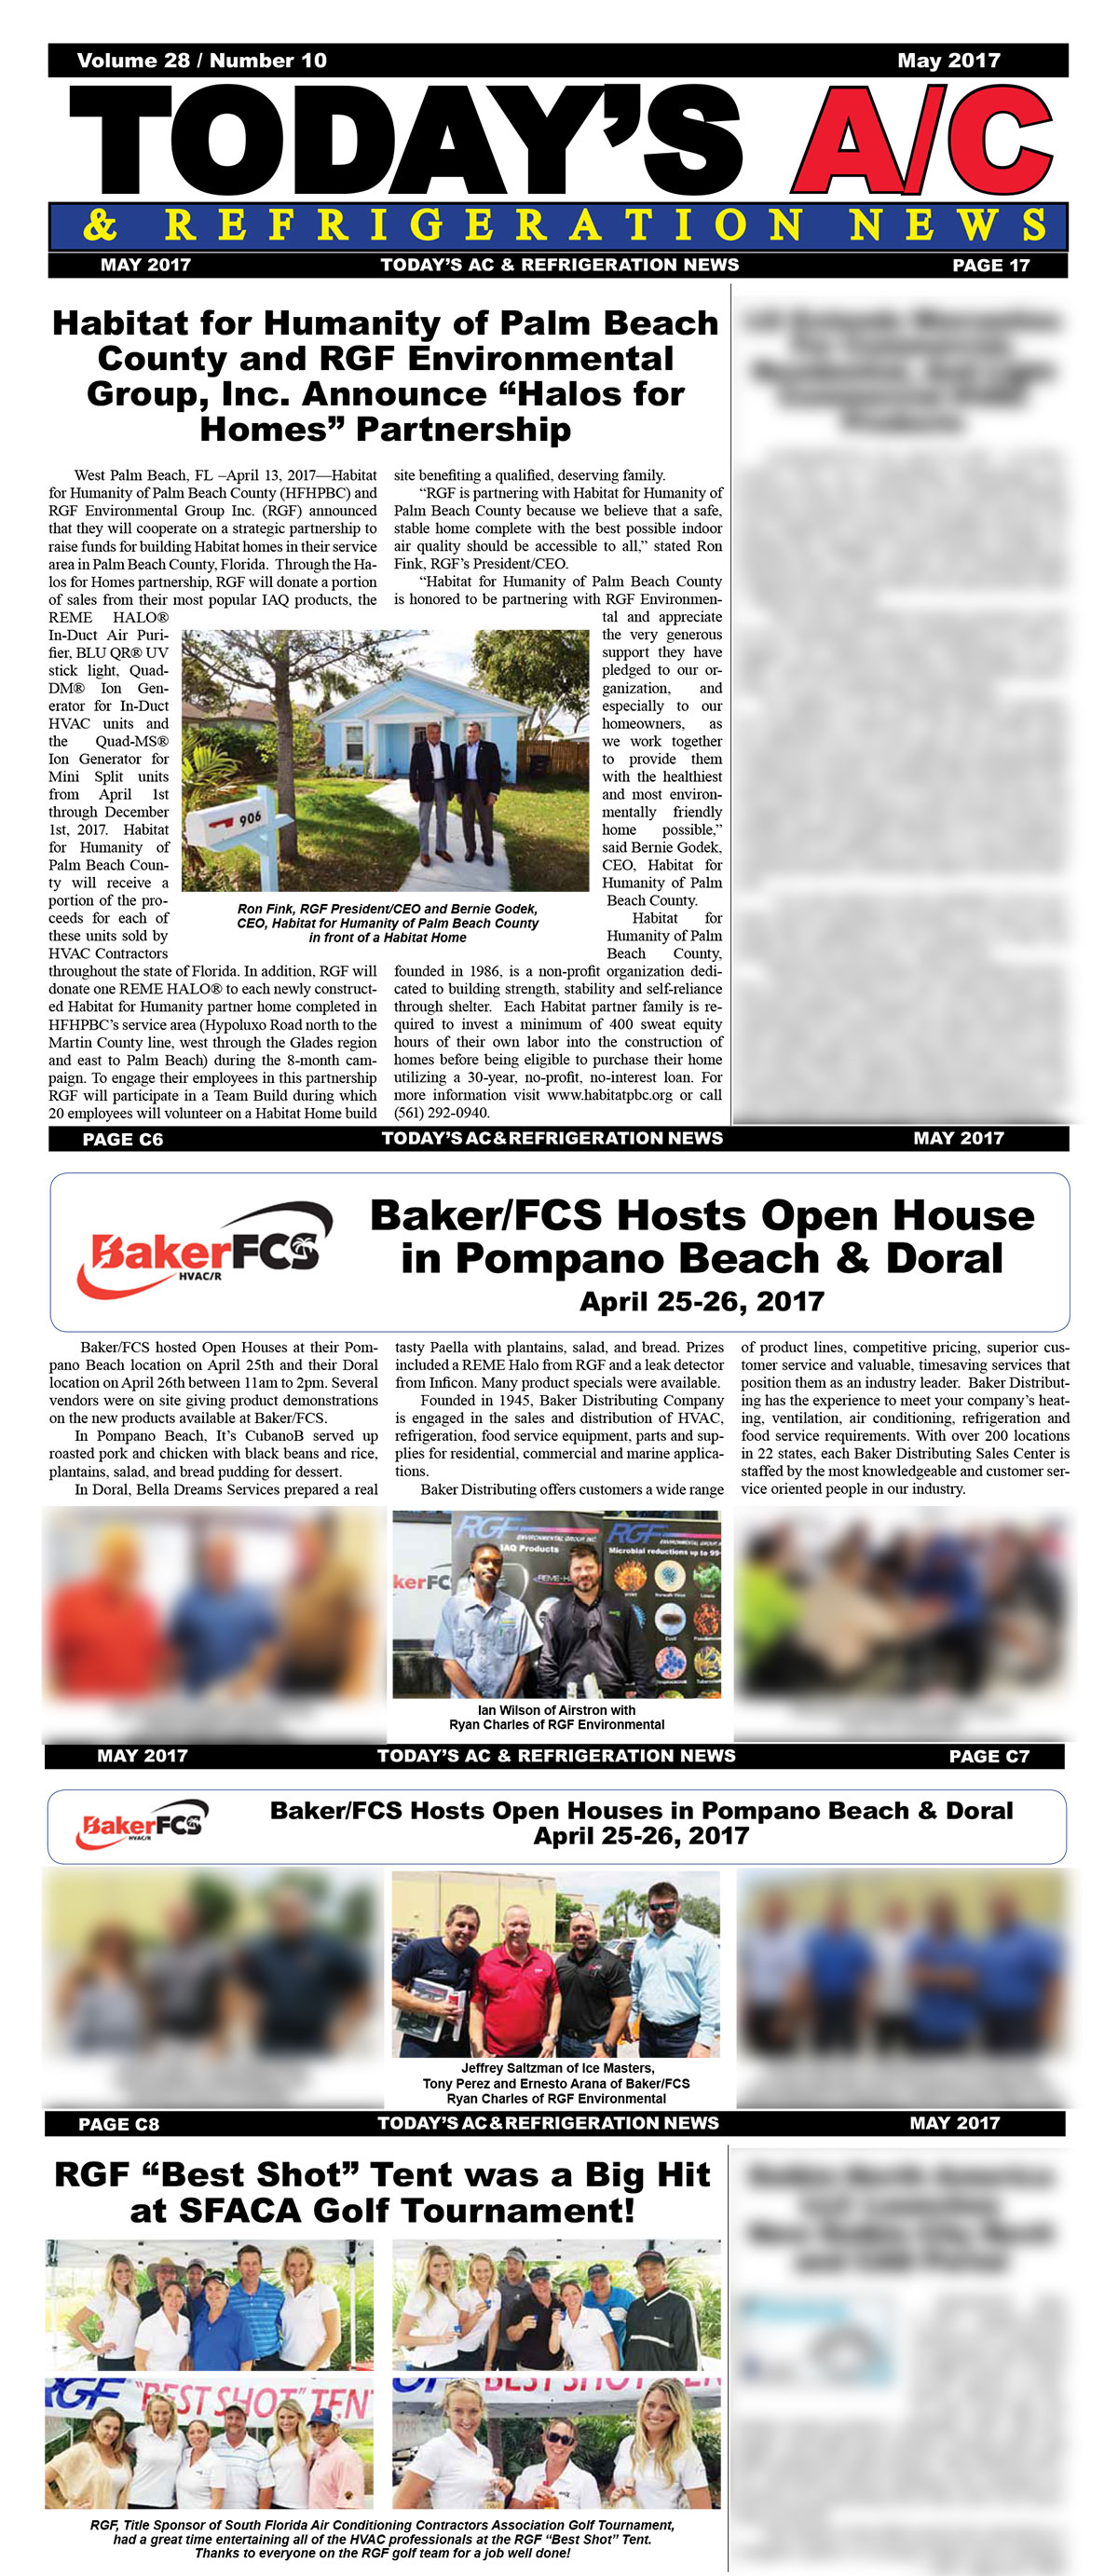 Todays AC, May 2017 – Habitat for Humanity